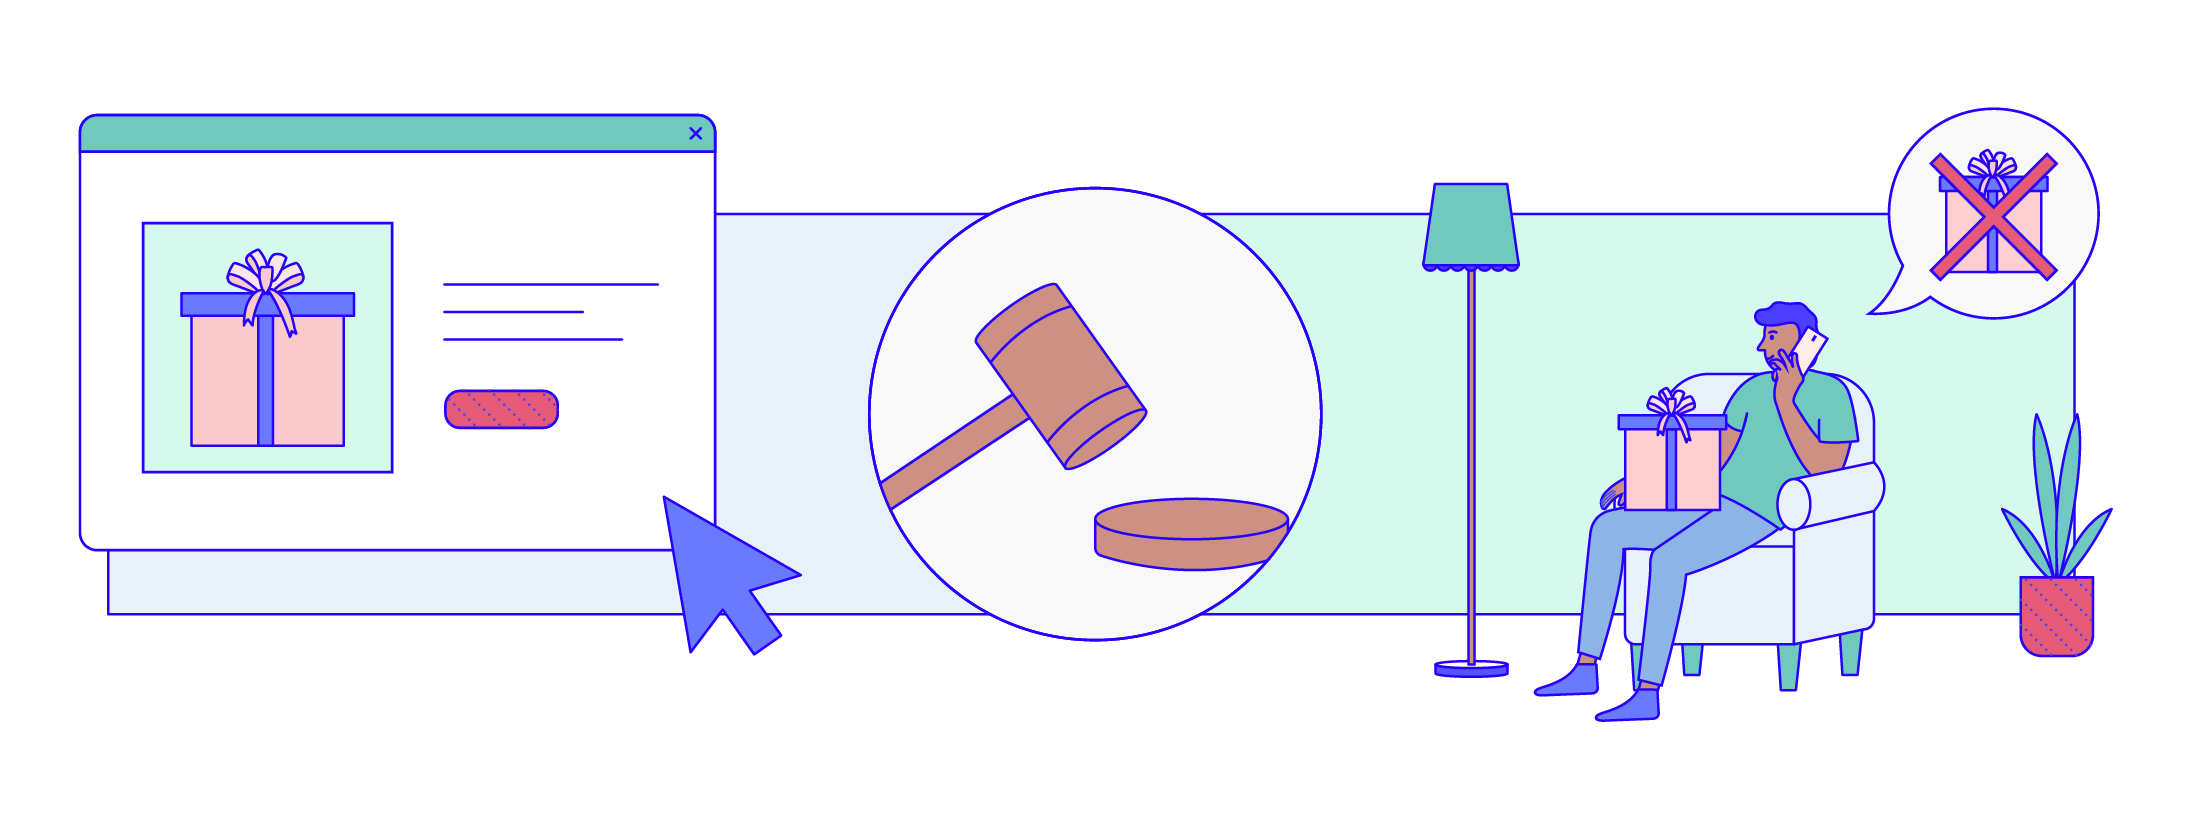 Preempting Friendly Fraud: Disputing Chargebacks with the Power of AI